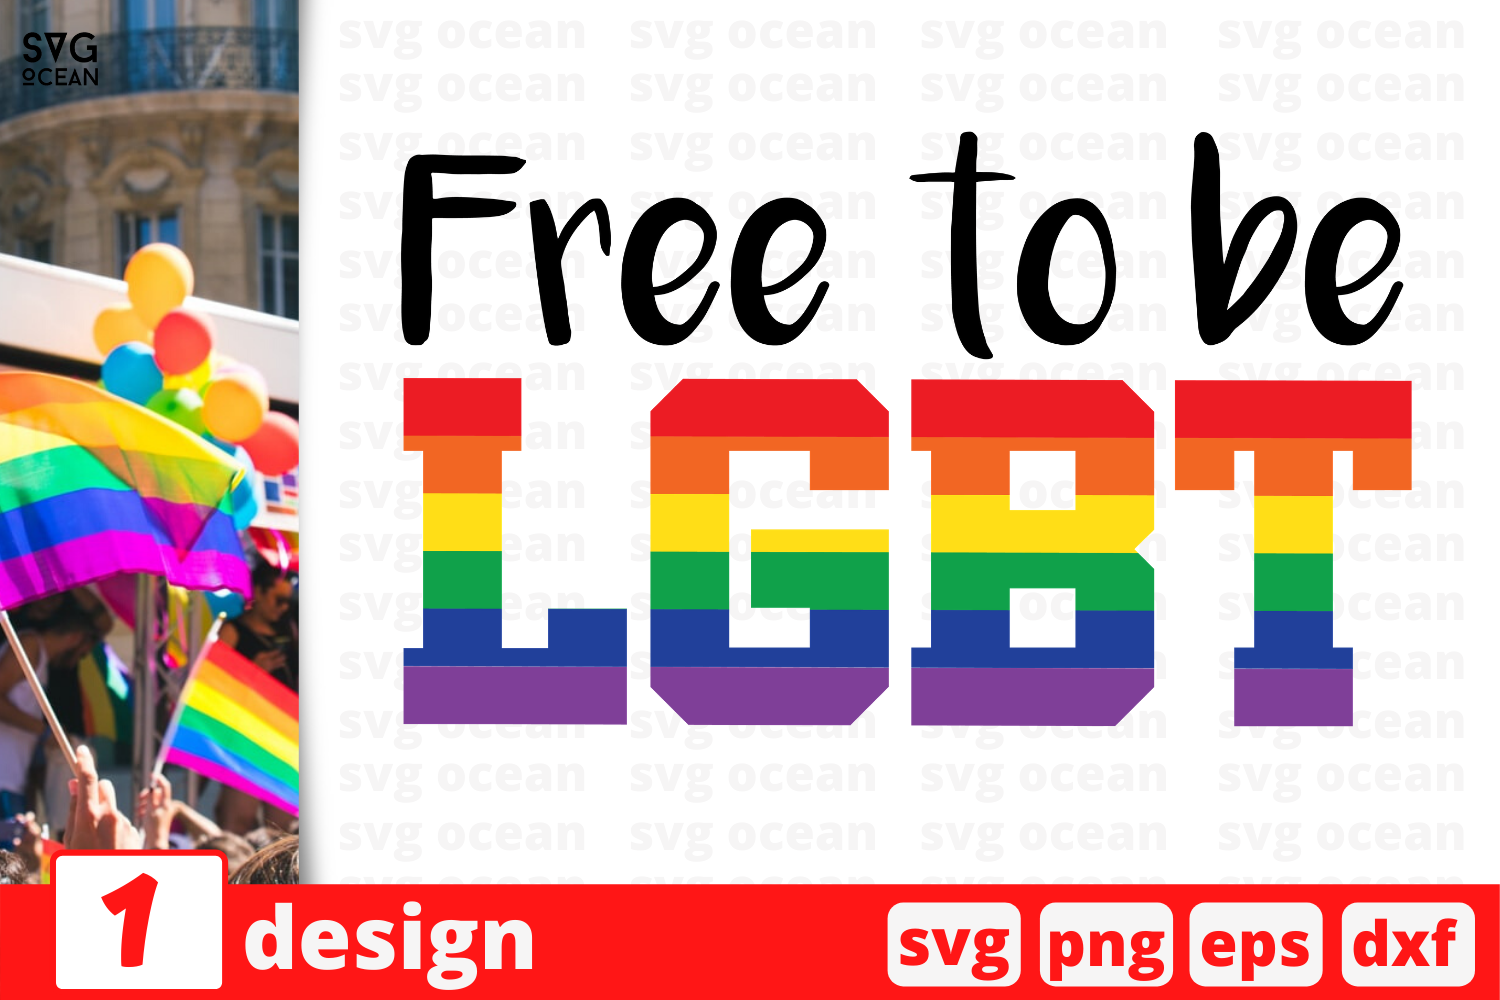 Download Free Free To Be Lgbt Graphic By Svgocean Creative Fabrica for Cricut Explore, Silhouette and other cutting machines.